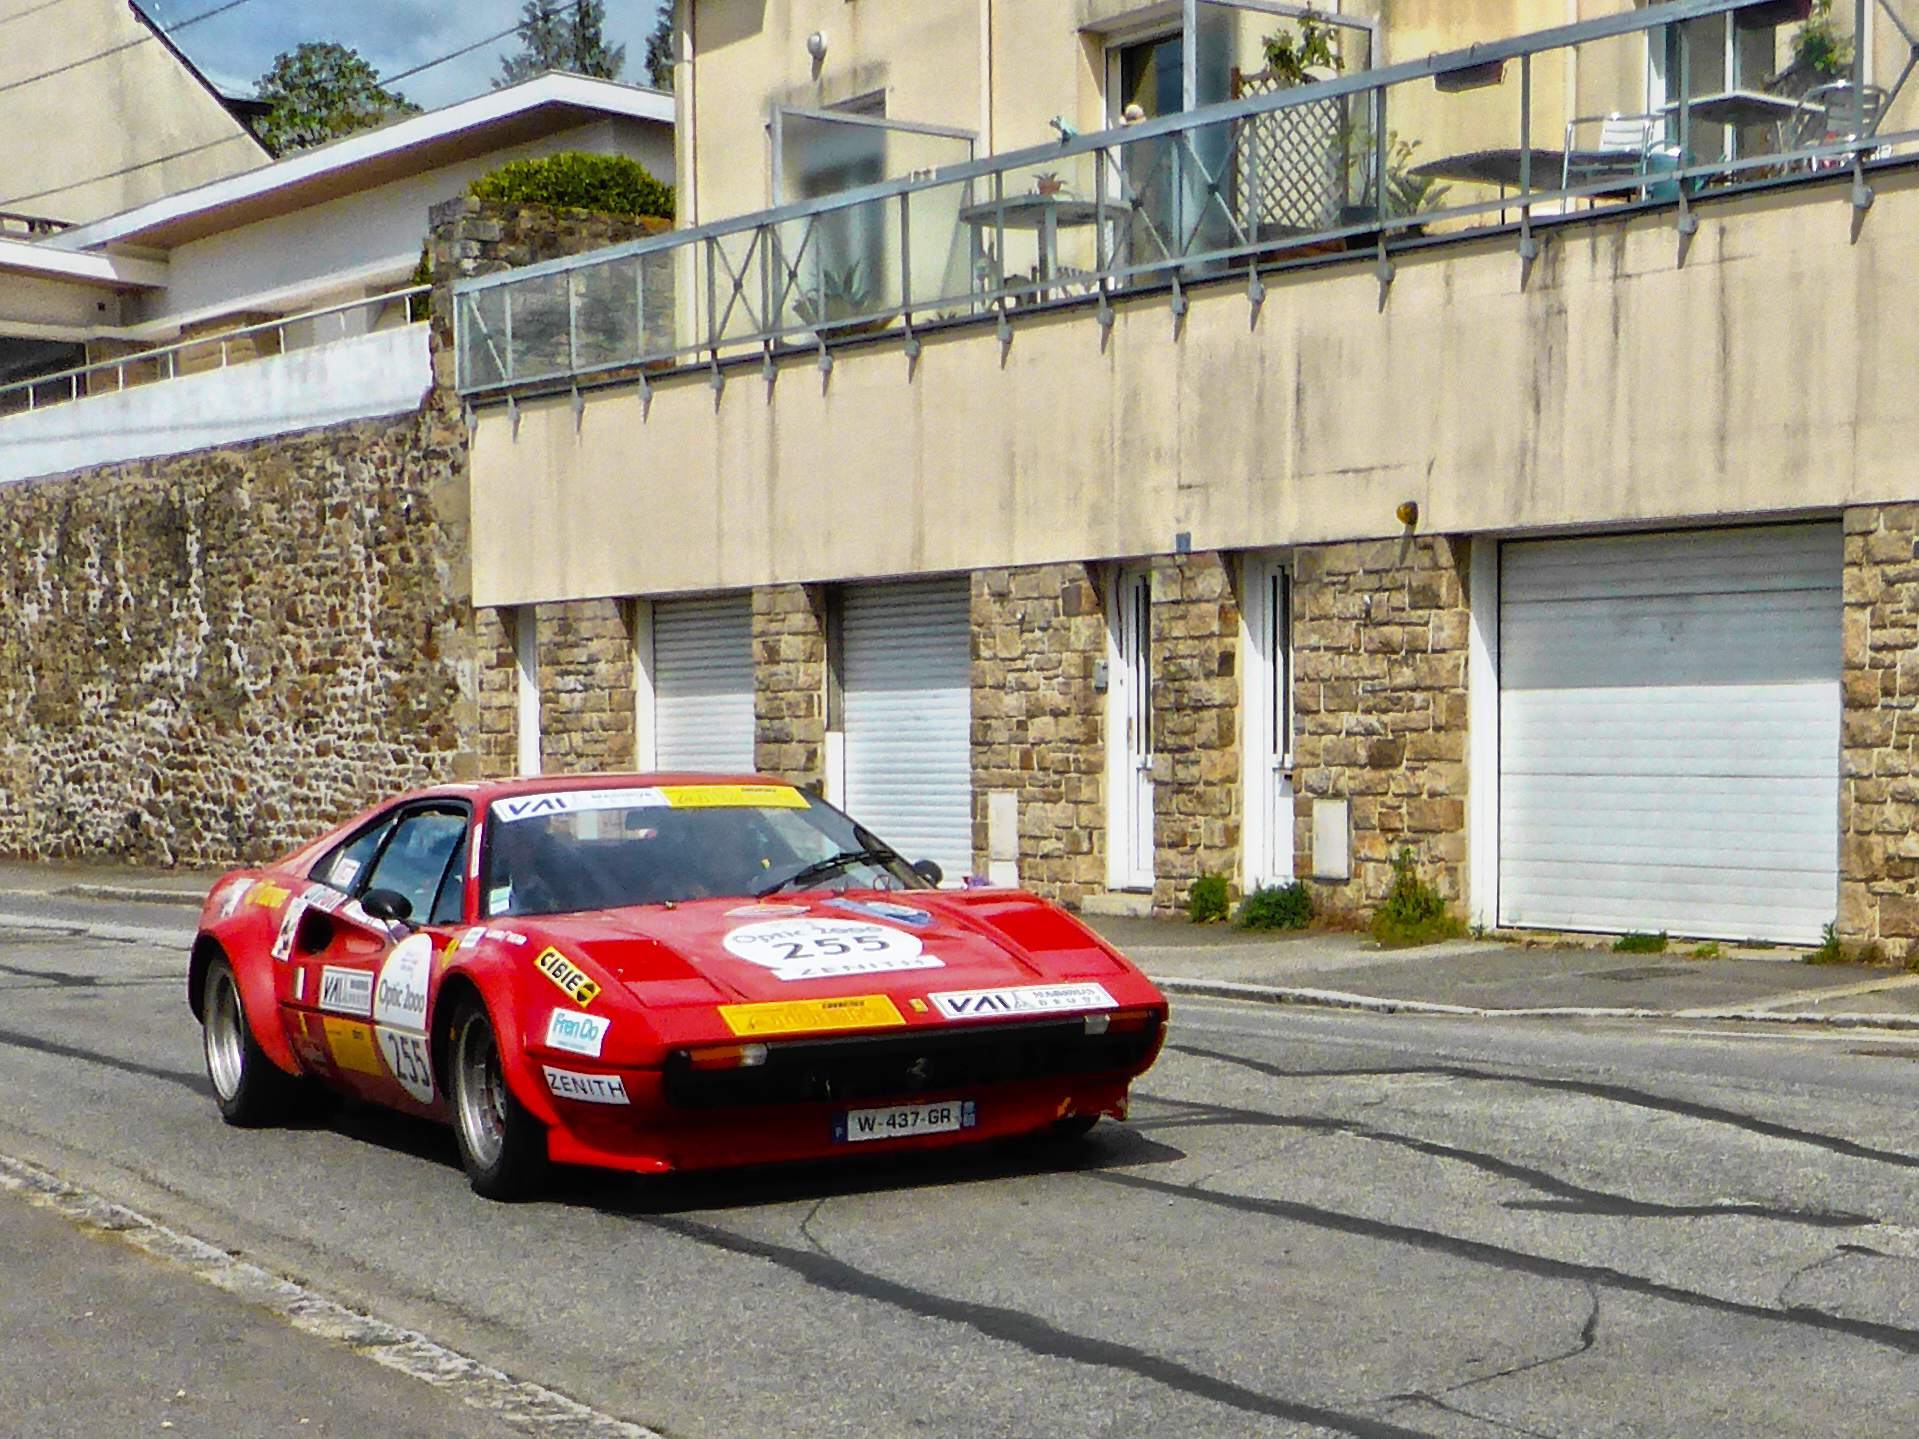 Ferrari 308 GTB Gr IV - 1976 - Tour Auto 2017 - photo by ELJ - DESIGNMOTEUR